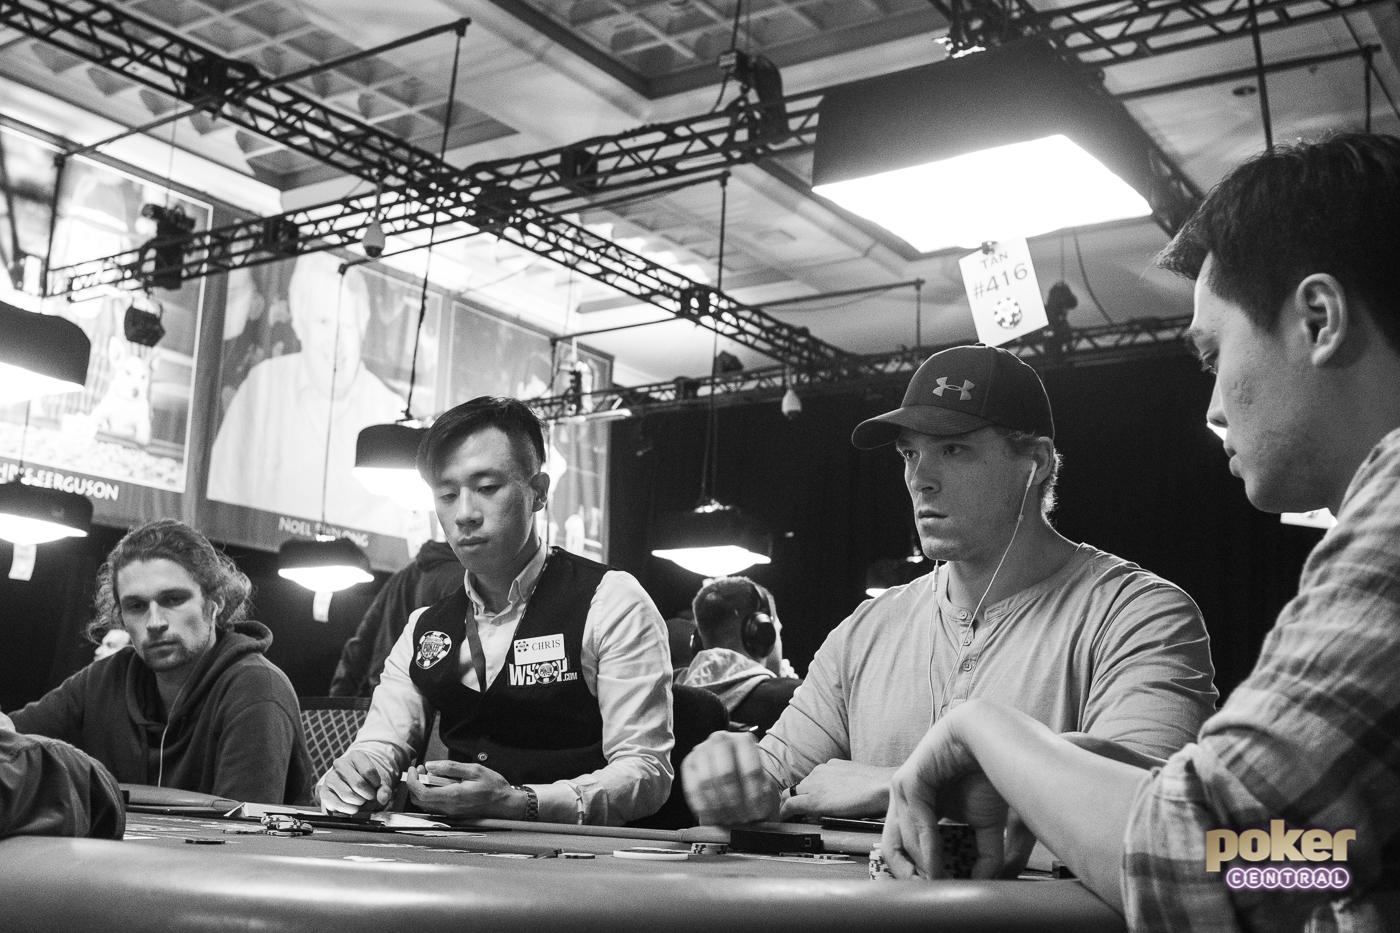 In position versus Ben Heath, Alex Foxen looks focused during Day 1 of the $50,000 High Roller at the WSOP.